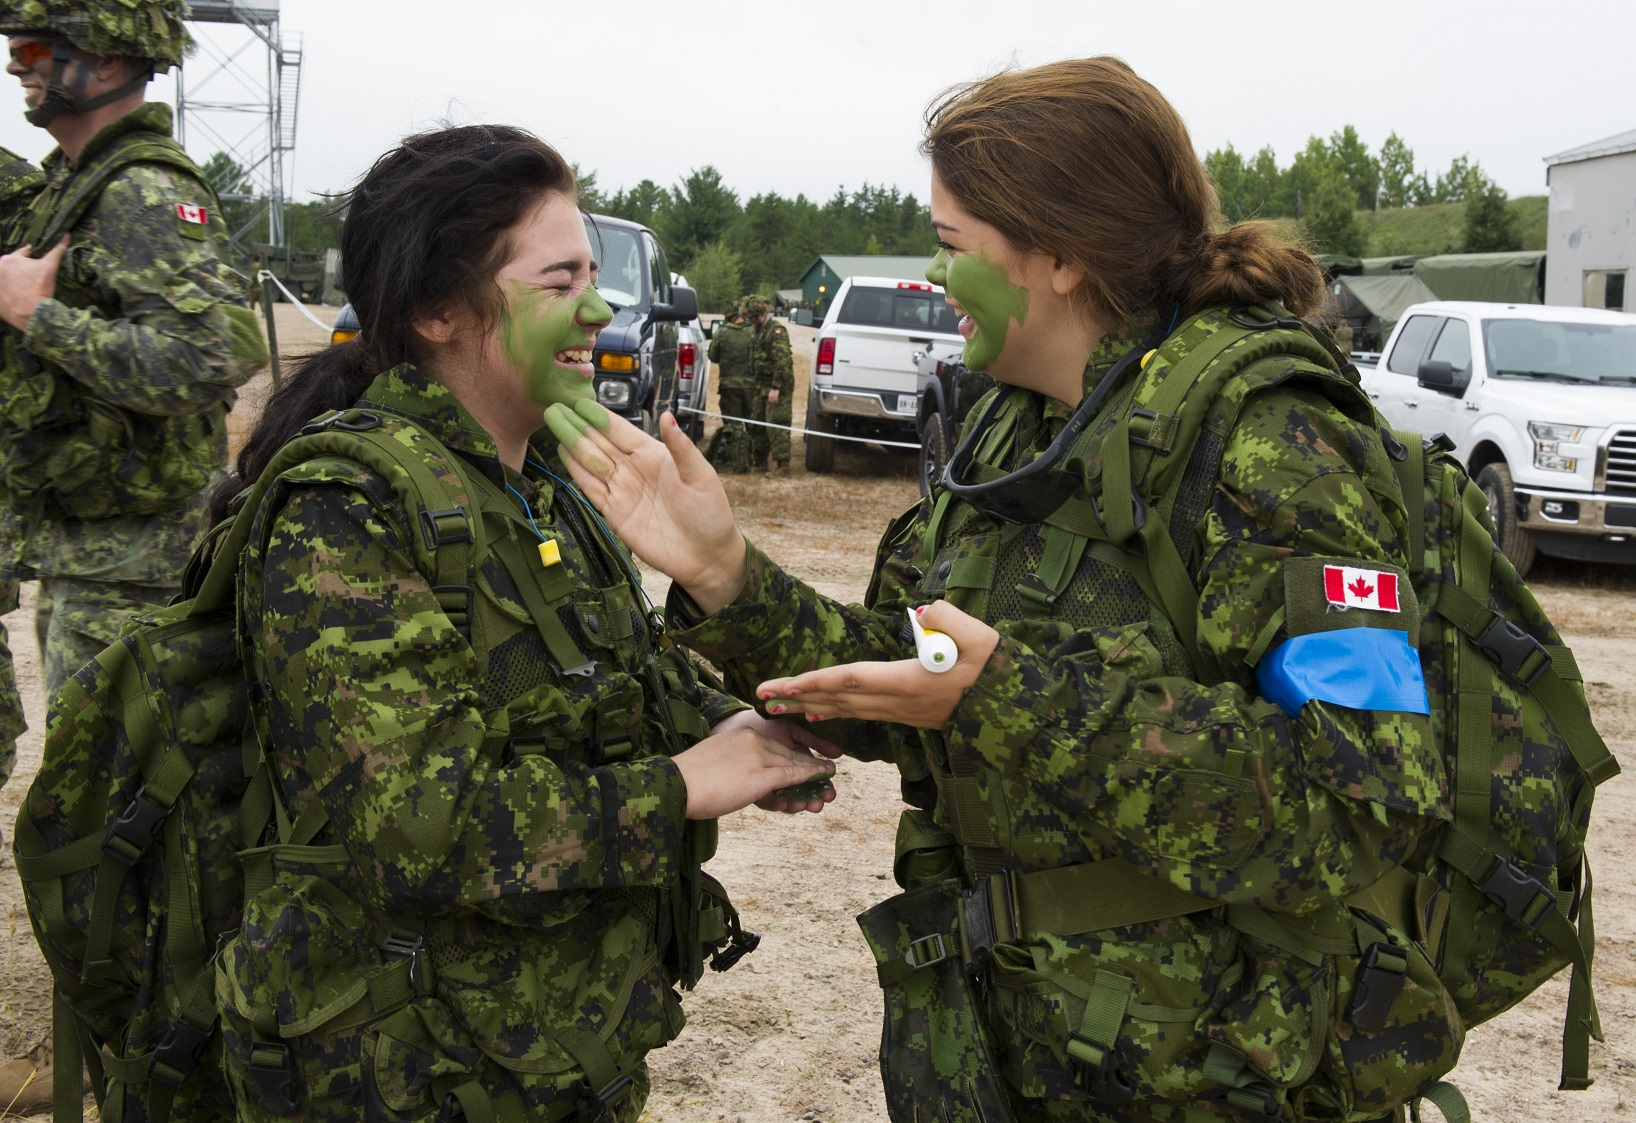 Civilian participants begin their day experiencing Army basic training during exercise COLLABORATIVE SPIRIT at 4th Canadian Division Support Base Petawawa in Ontario on September 21, 2016.